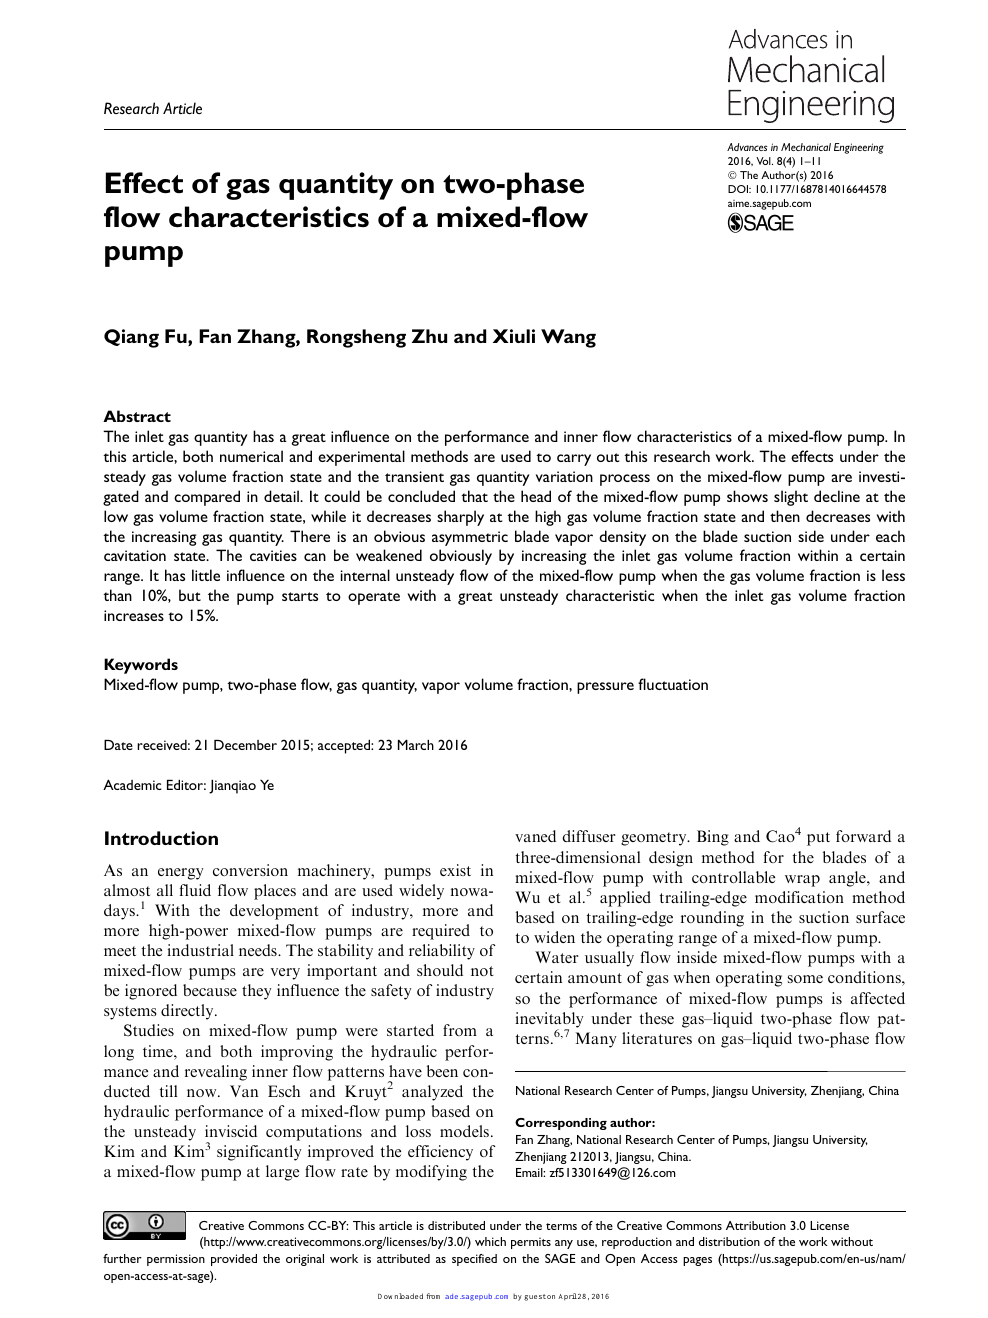 Effect of gas quantity on two-phase flow characteristics of